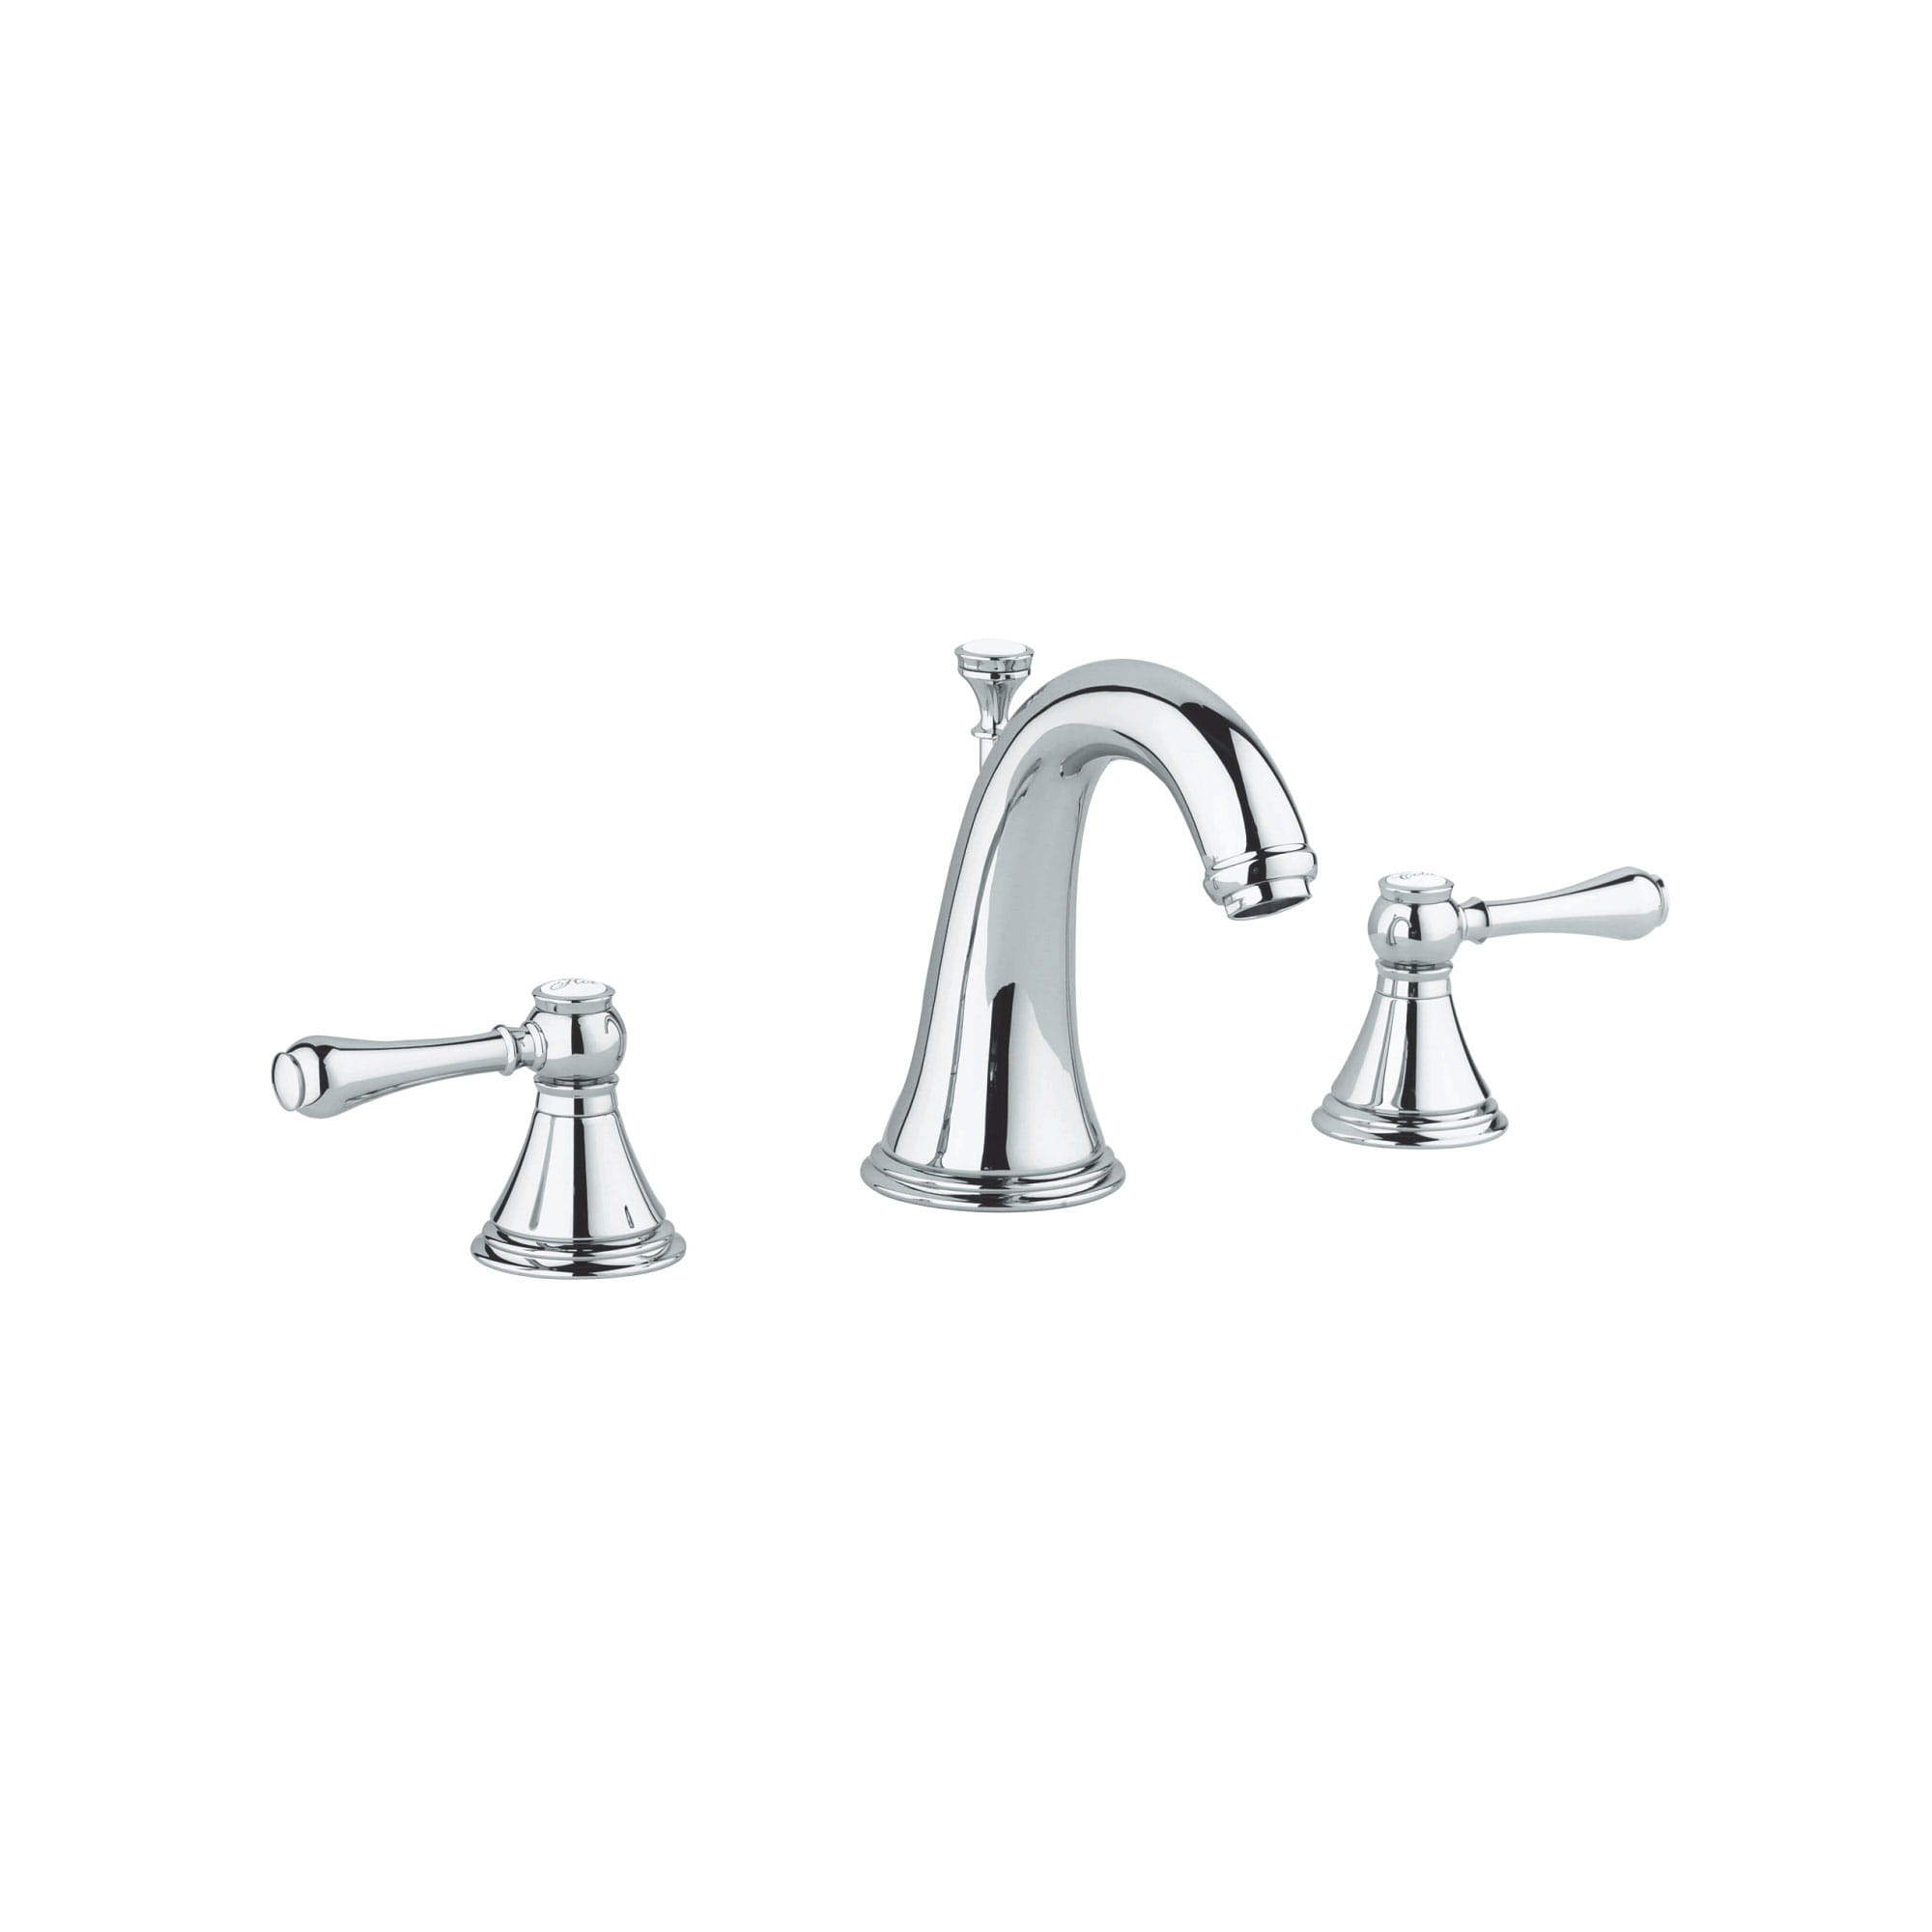 8 inch widespread 2 handle s size bathroom faucet 1 2 gpm